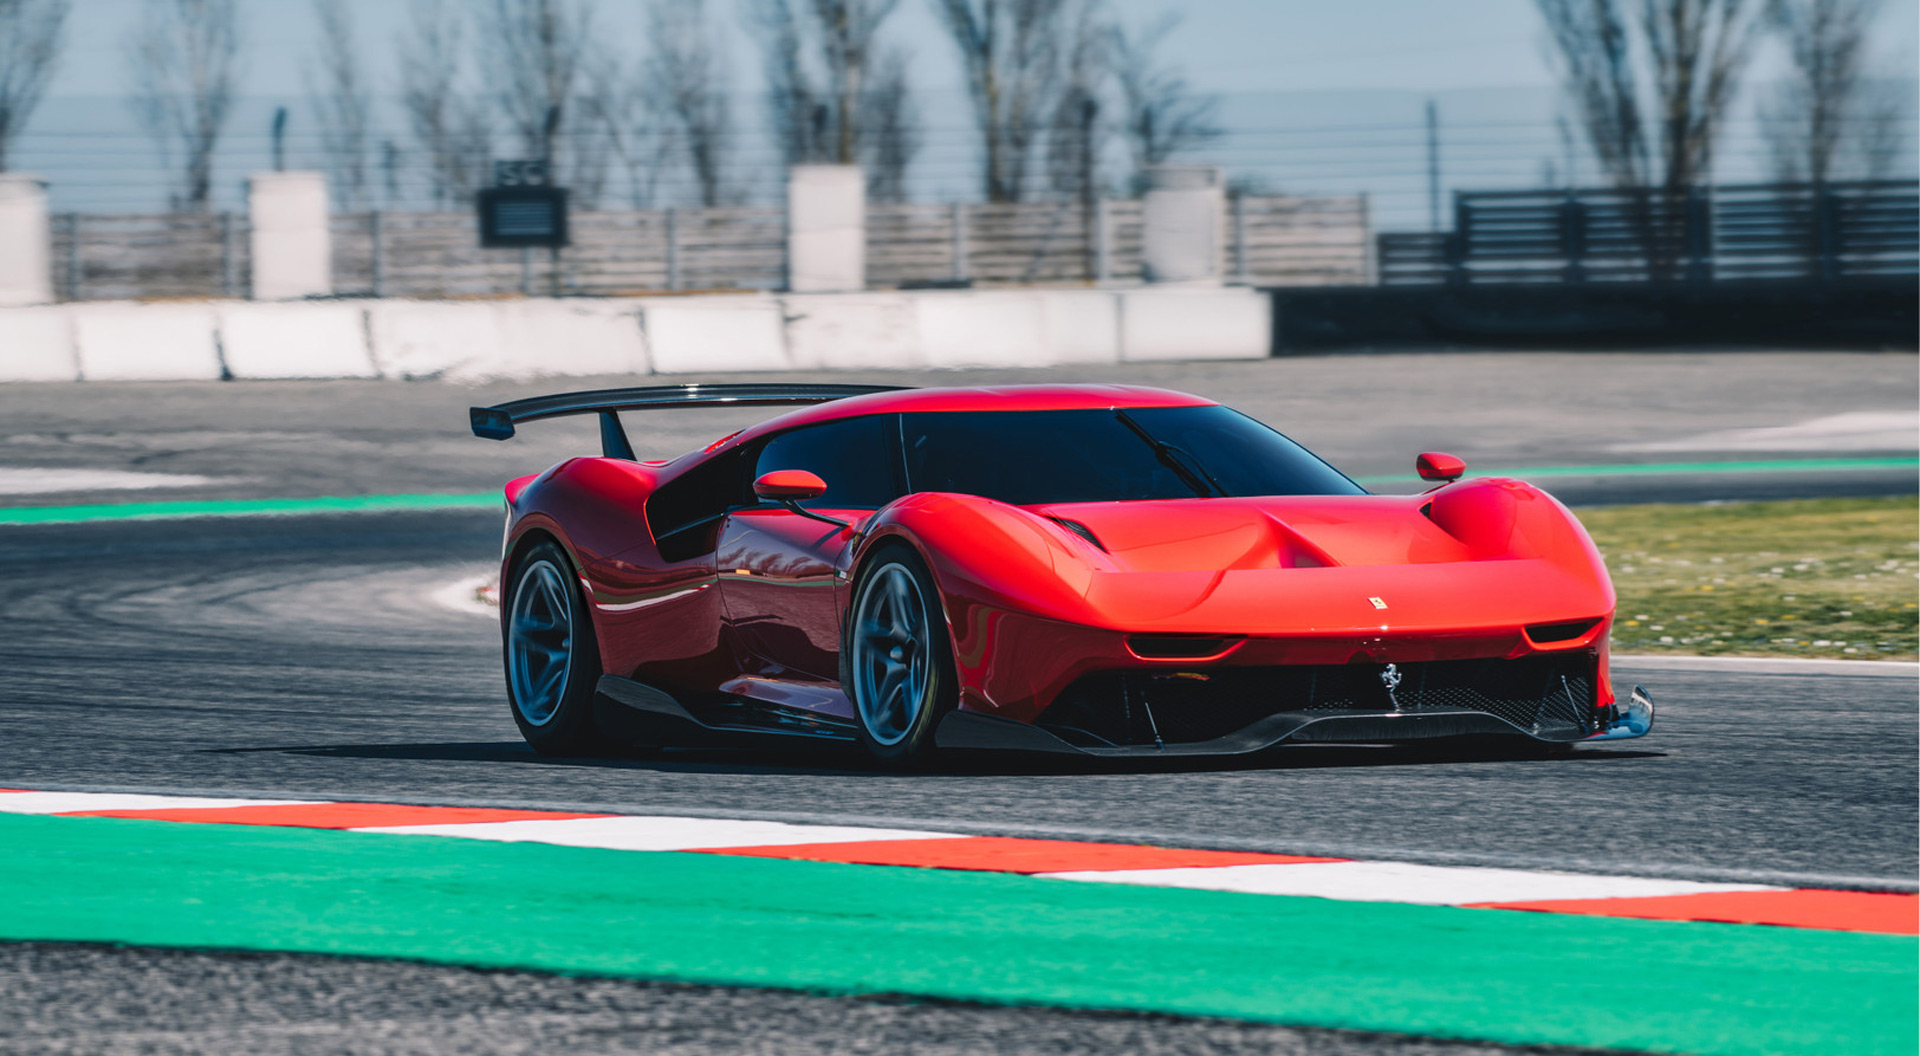 Ferrari P80 C Dodge Charger Widebody Mercedes Amg A35 This Week S Top Photos